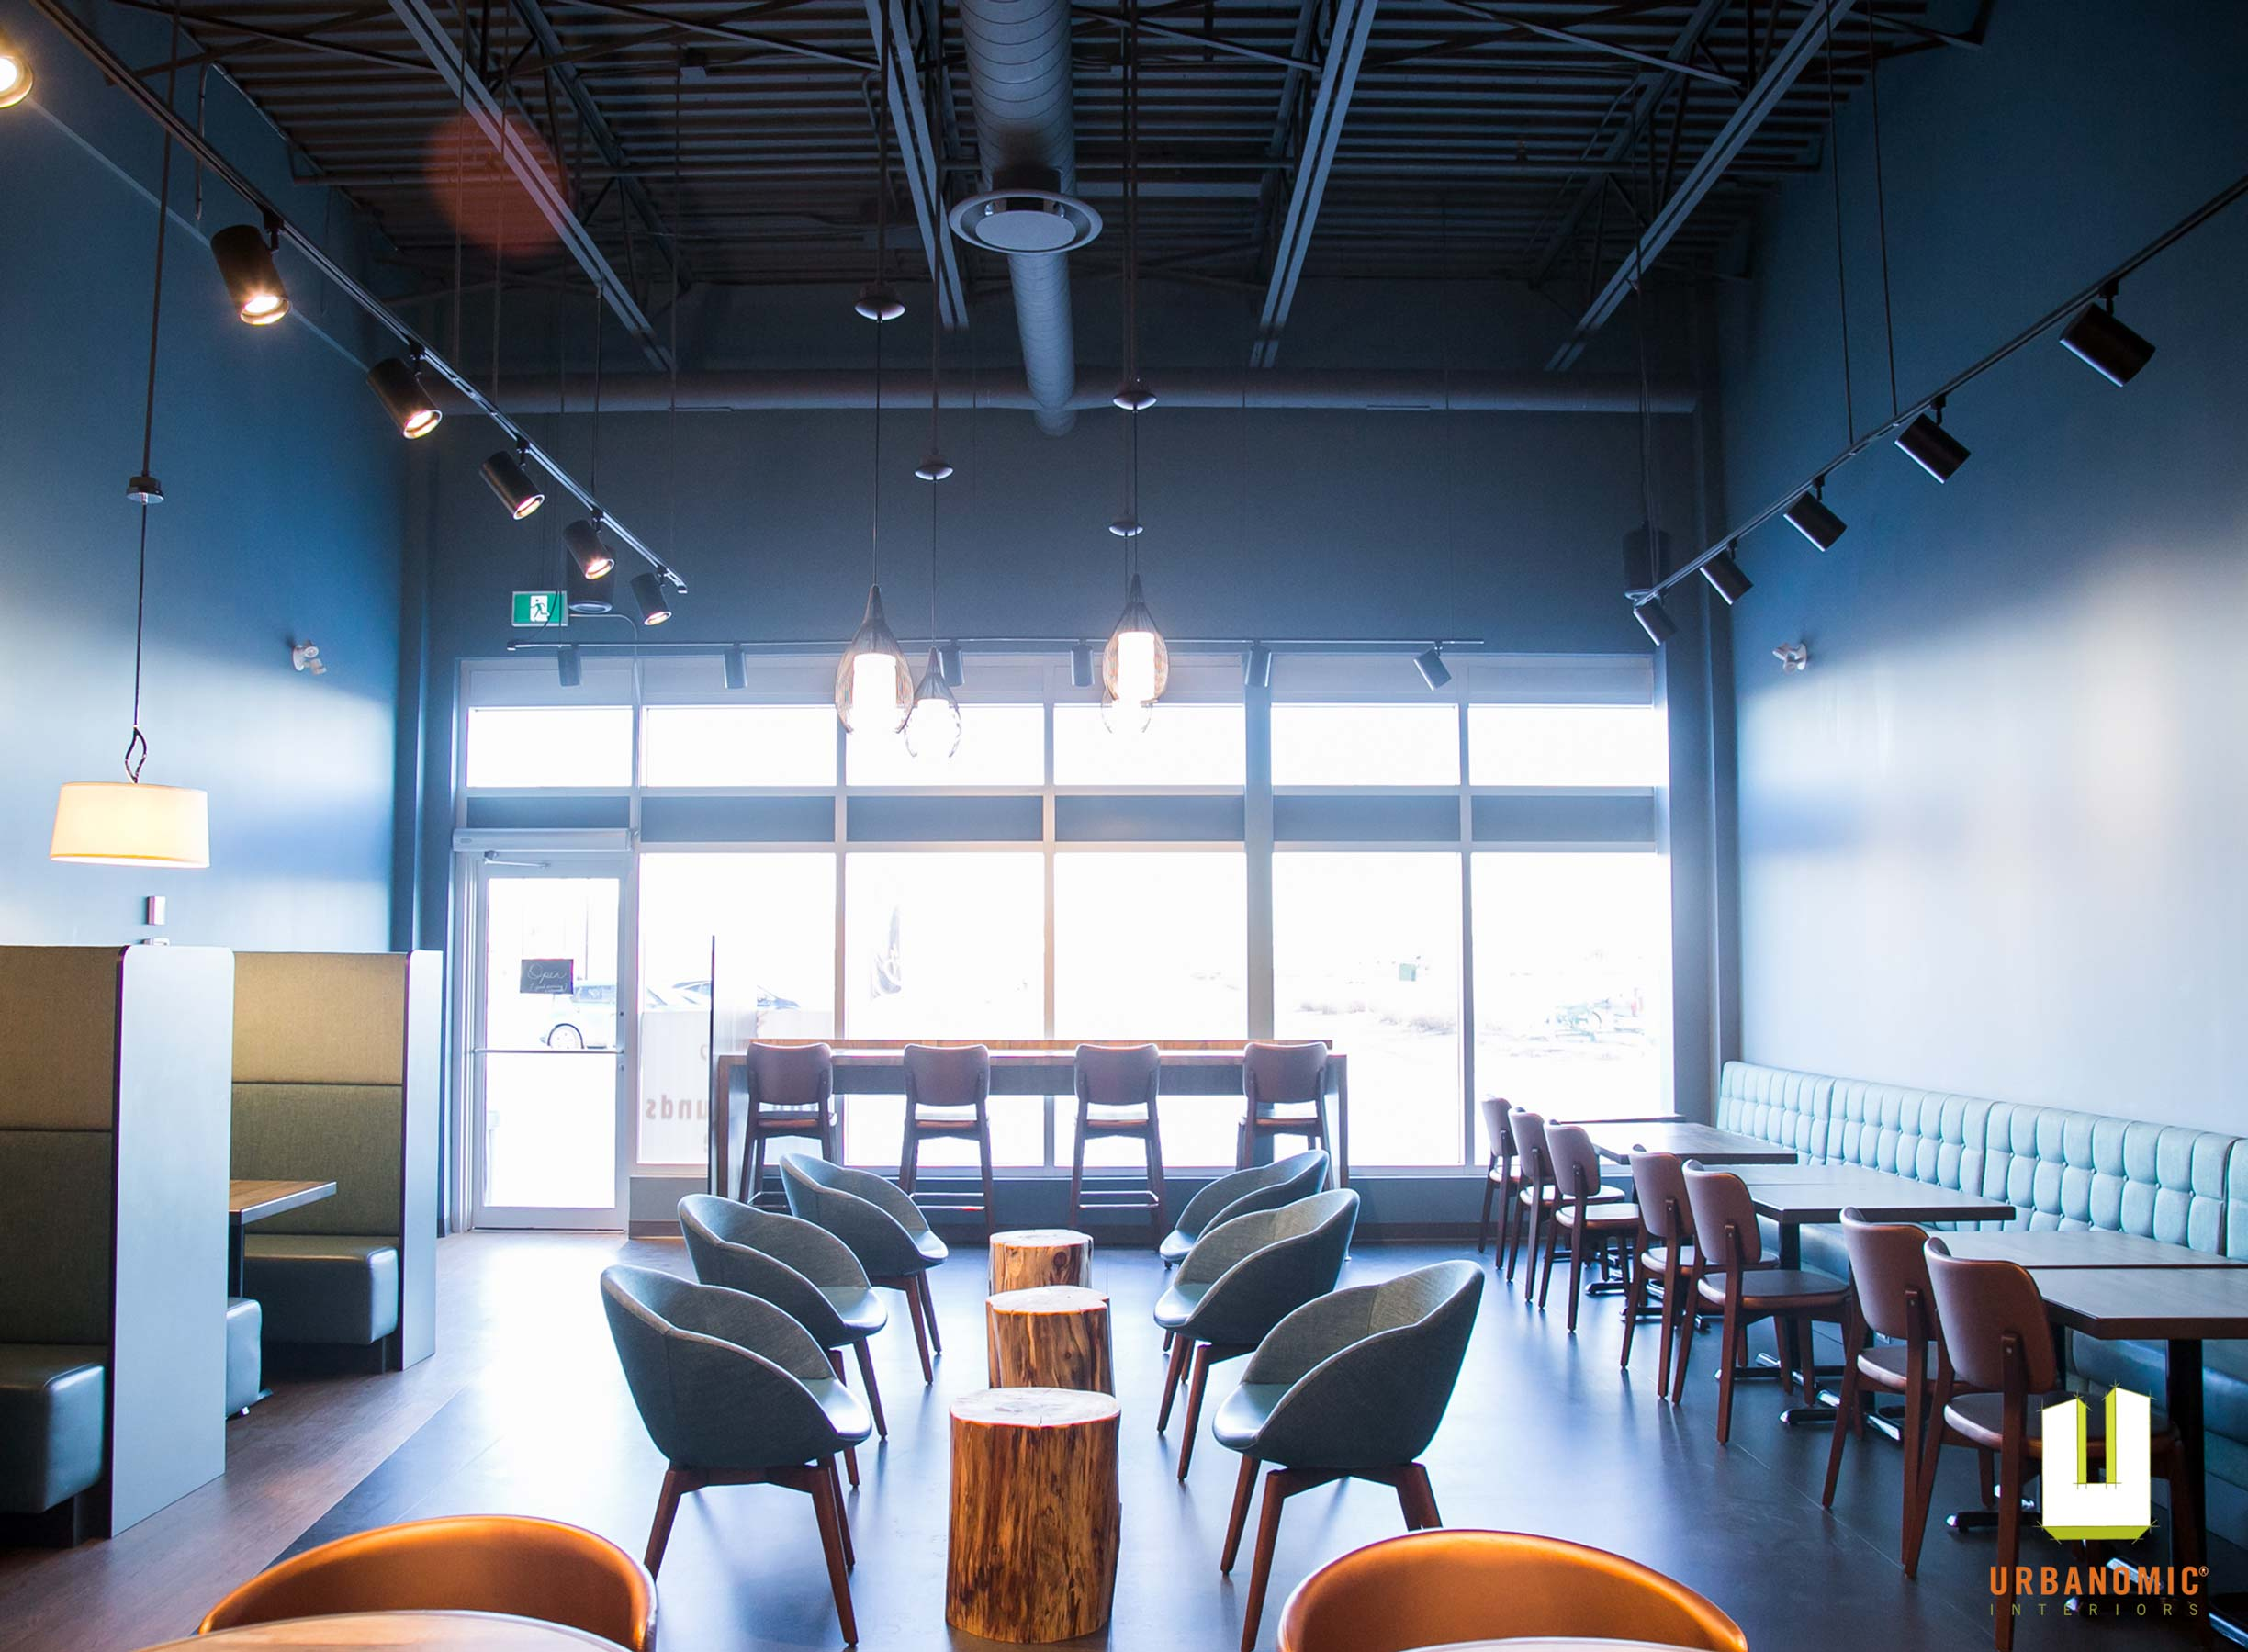 Grounds café stittsville ottawa on urbanomic interiors